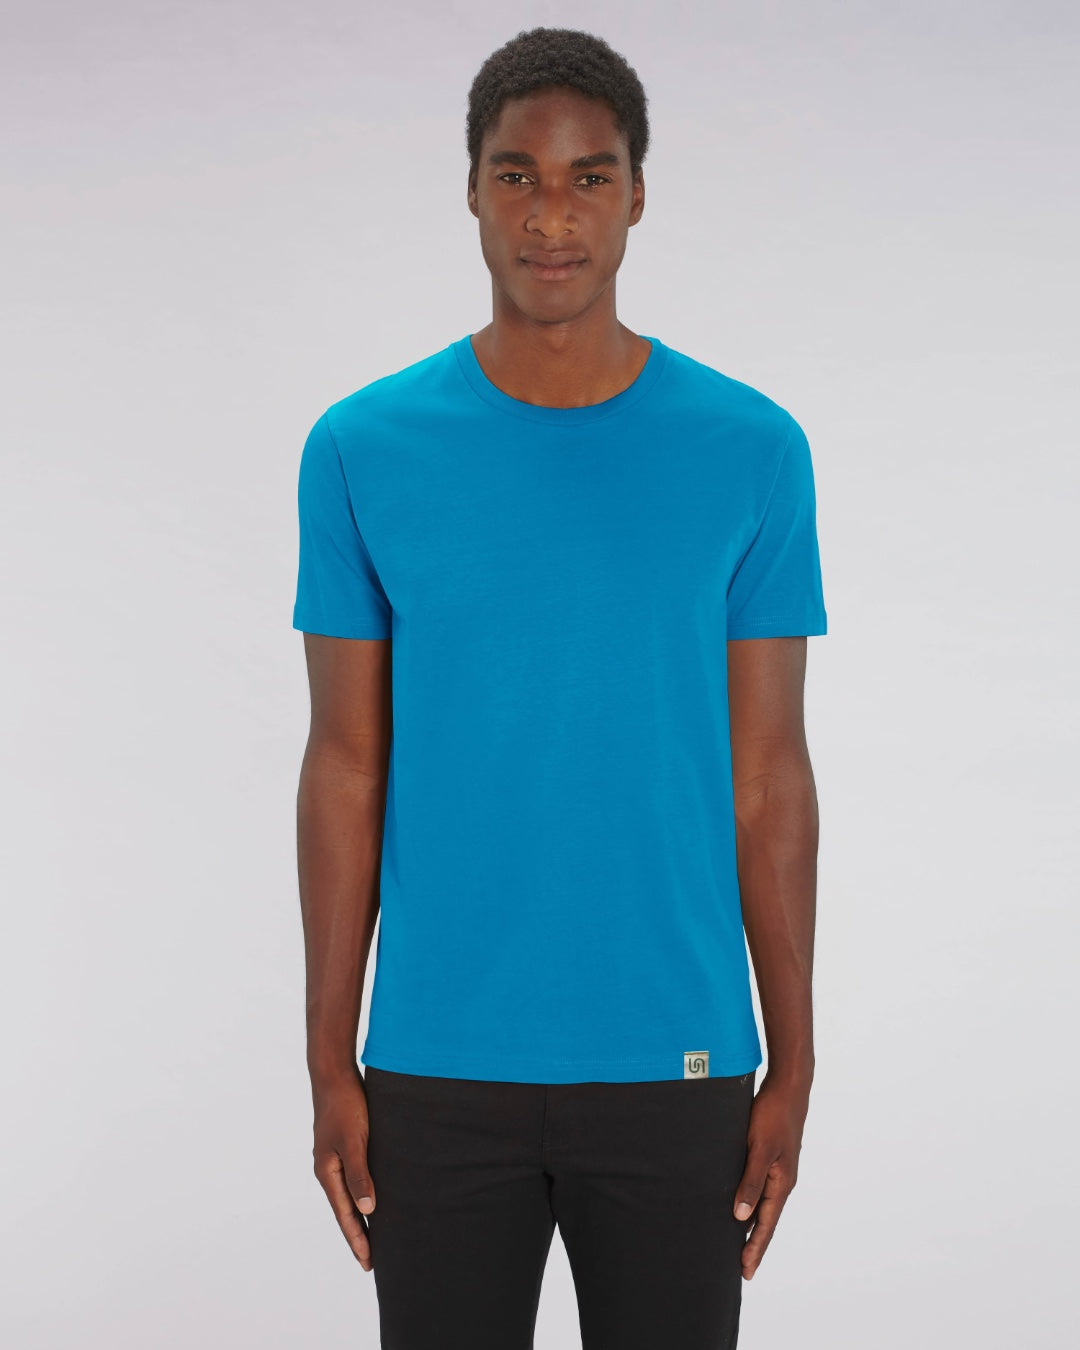 The Green Tee - sustainable, vegan and plastic free t-shirt - colour: blue